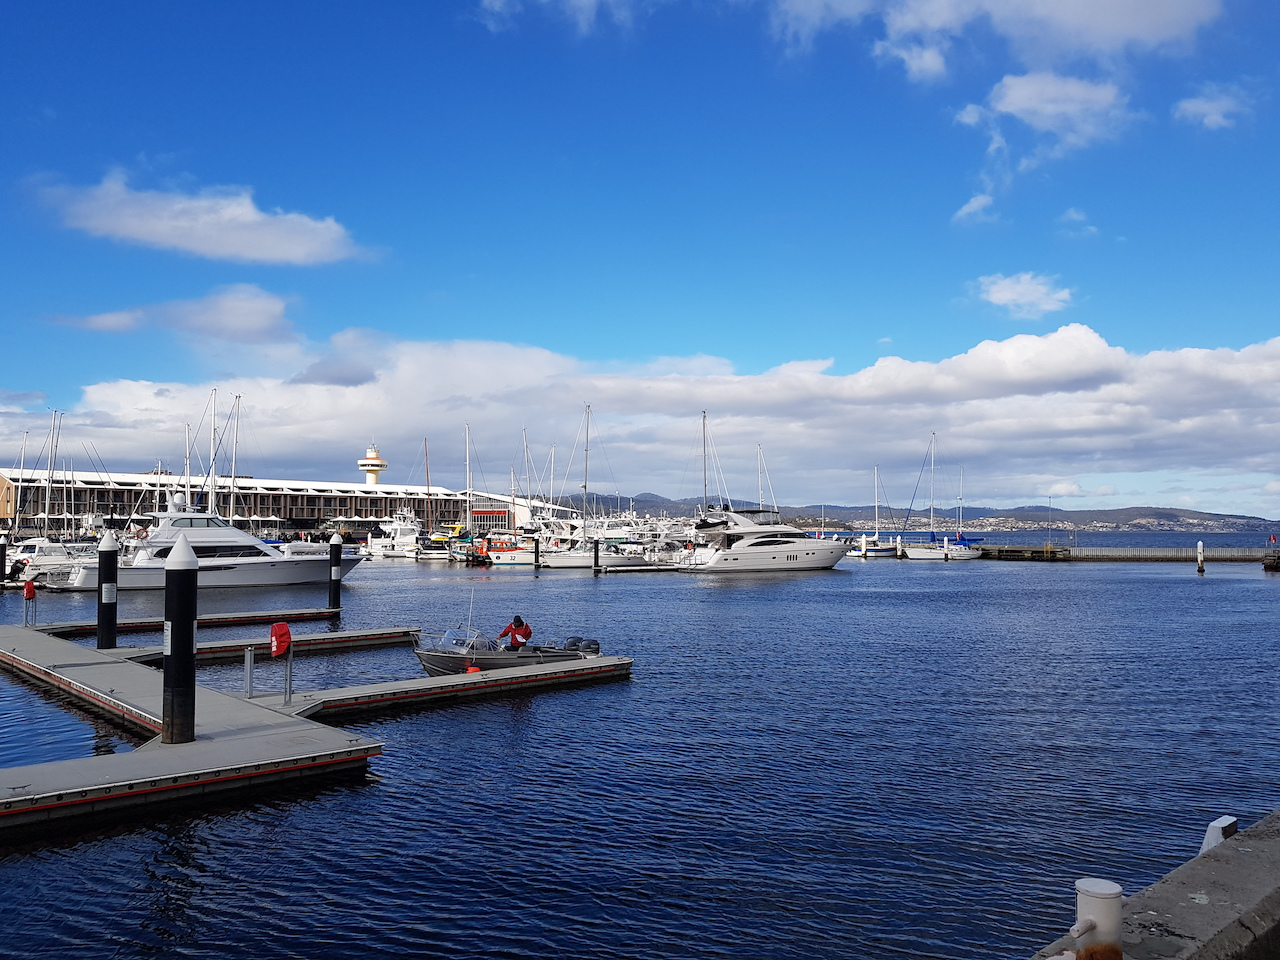 Top 10 Reasons to Visit Tasmania